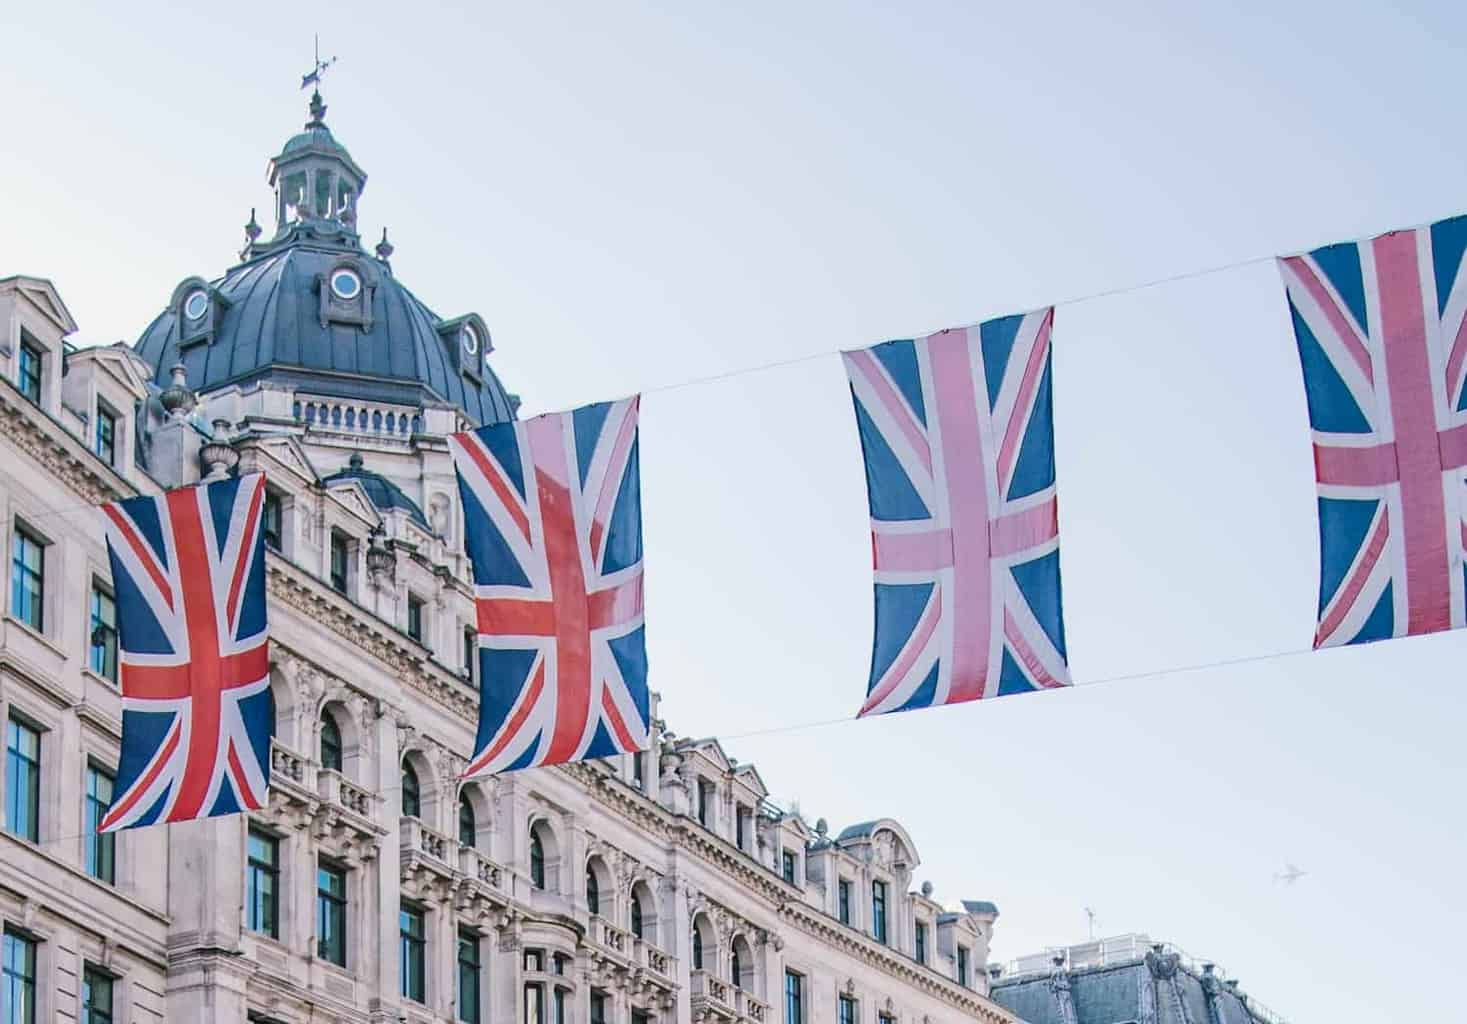 Over 150k Lenders Invested £800M In Over 320k Loans During Q2 2019 - UK